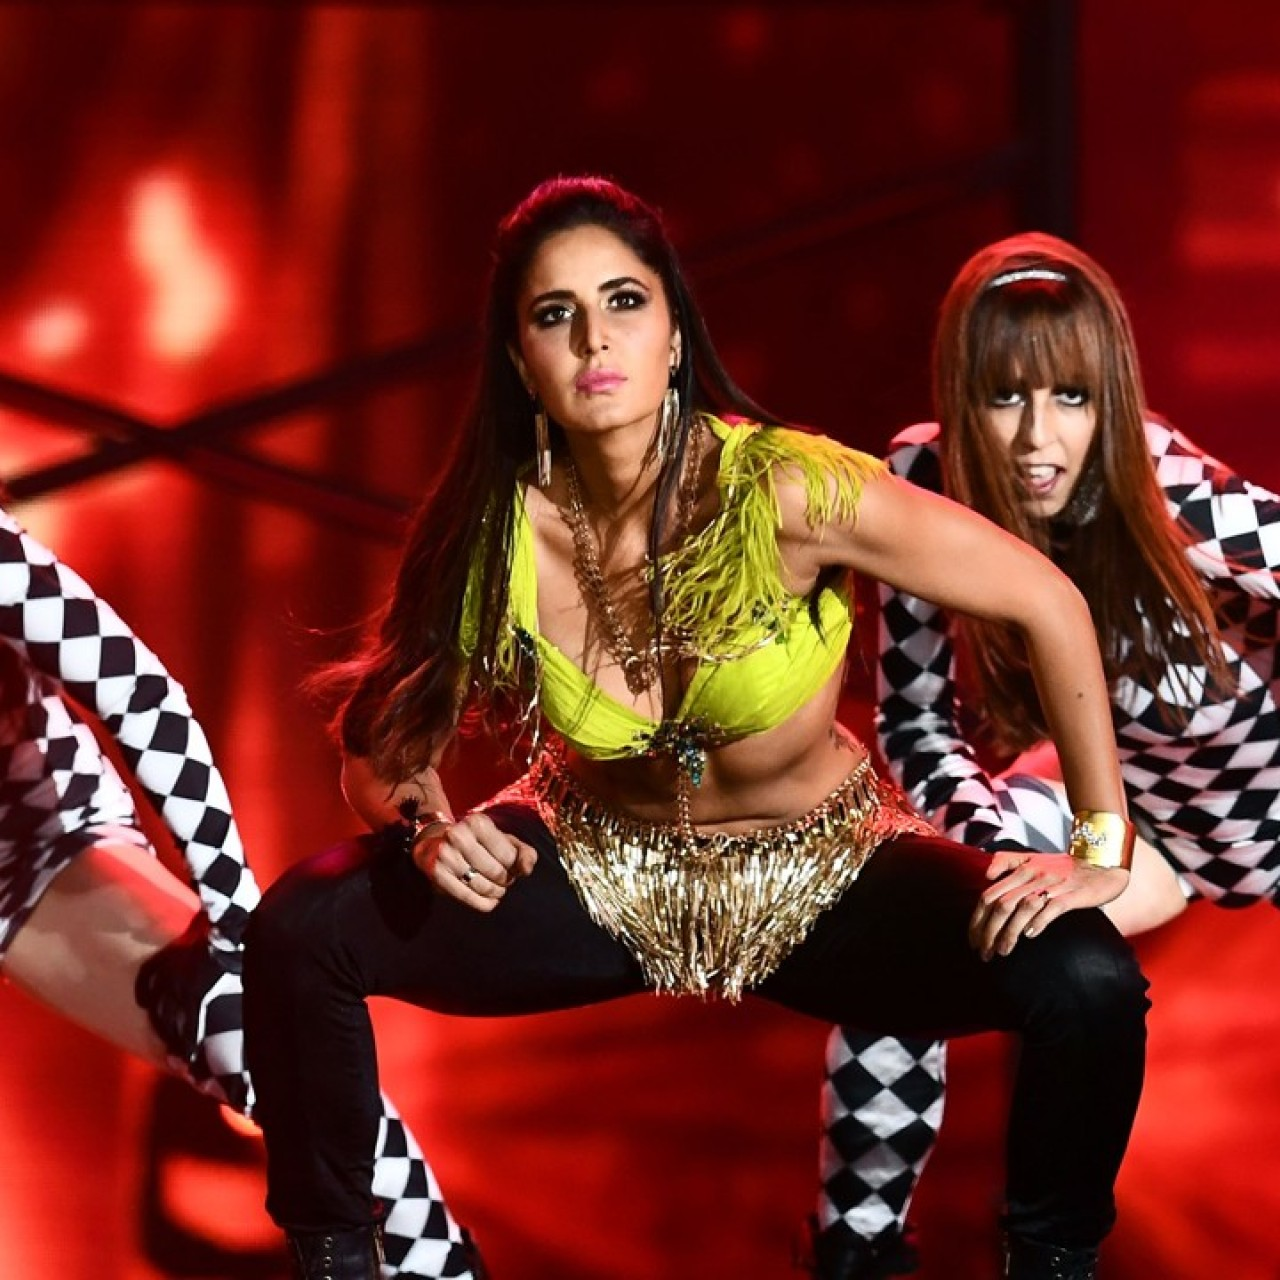 Bollywood's biggest stars take over New York stadium with